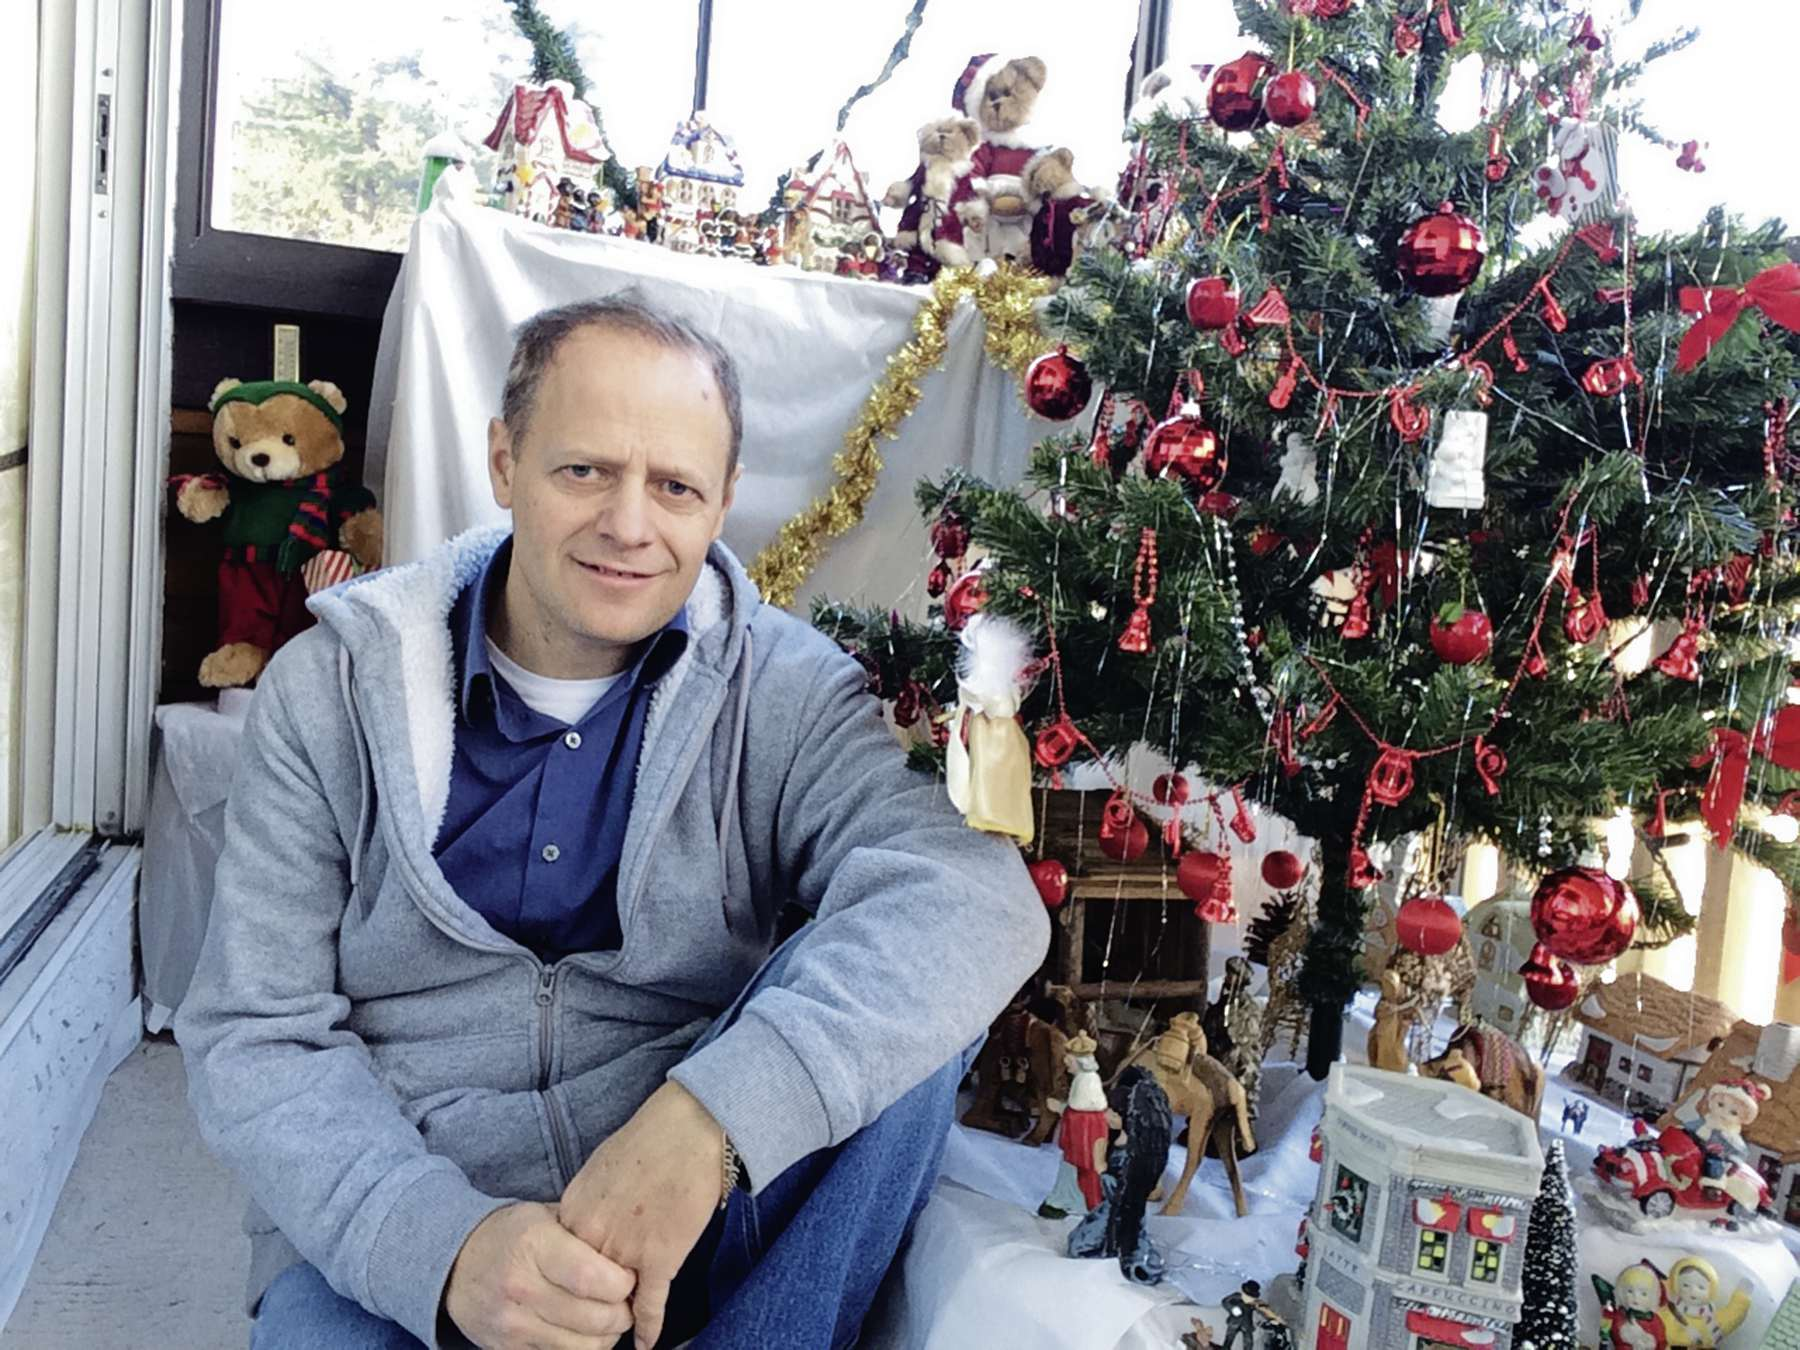 Winnipeg North MP Kevin Lamoureux will hold a live Christmas event on Facebook at 7 p.m. on Dec. 23.